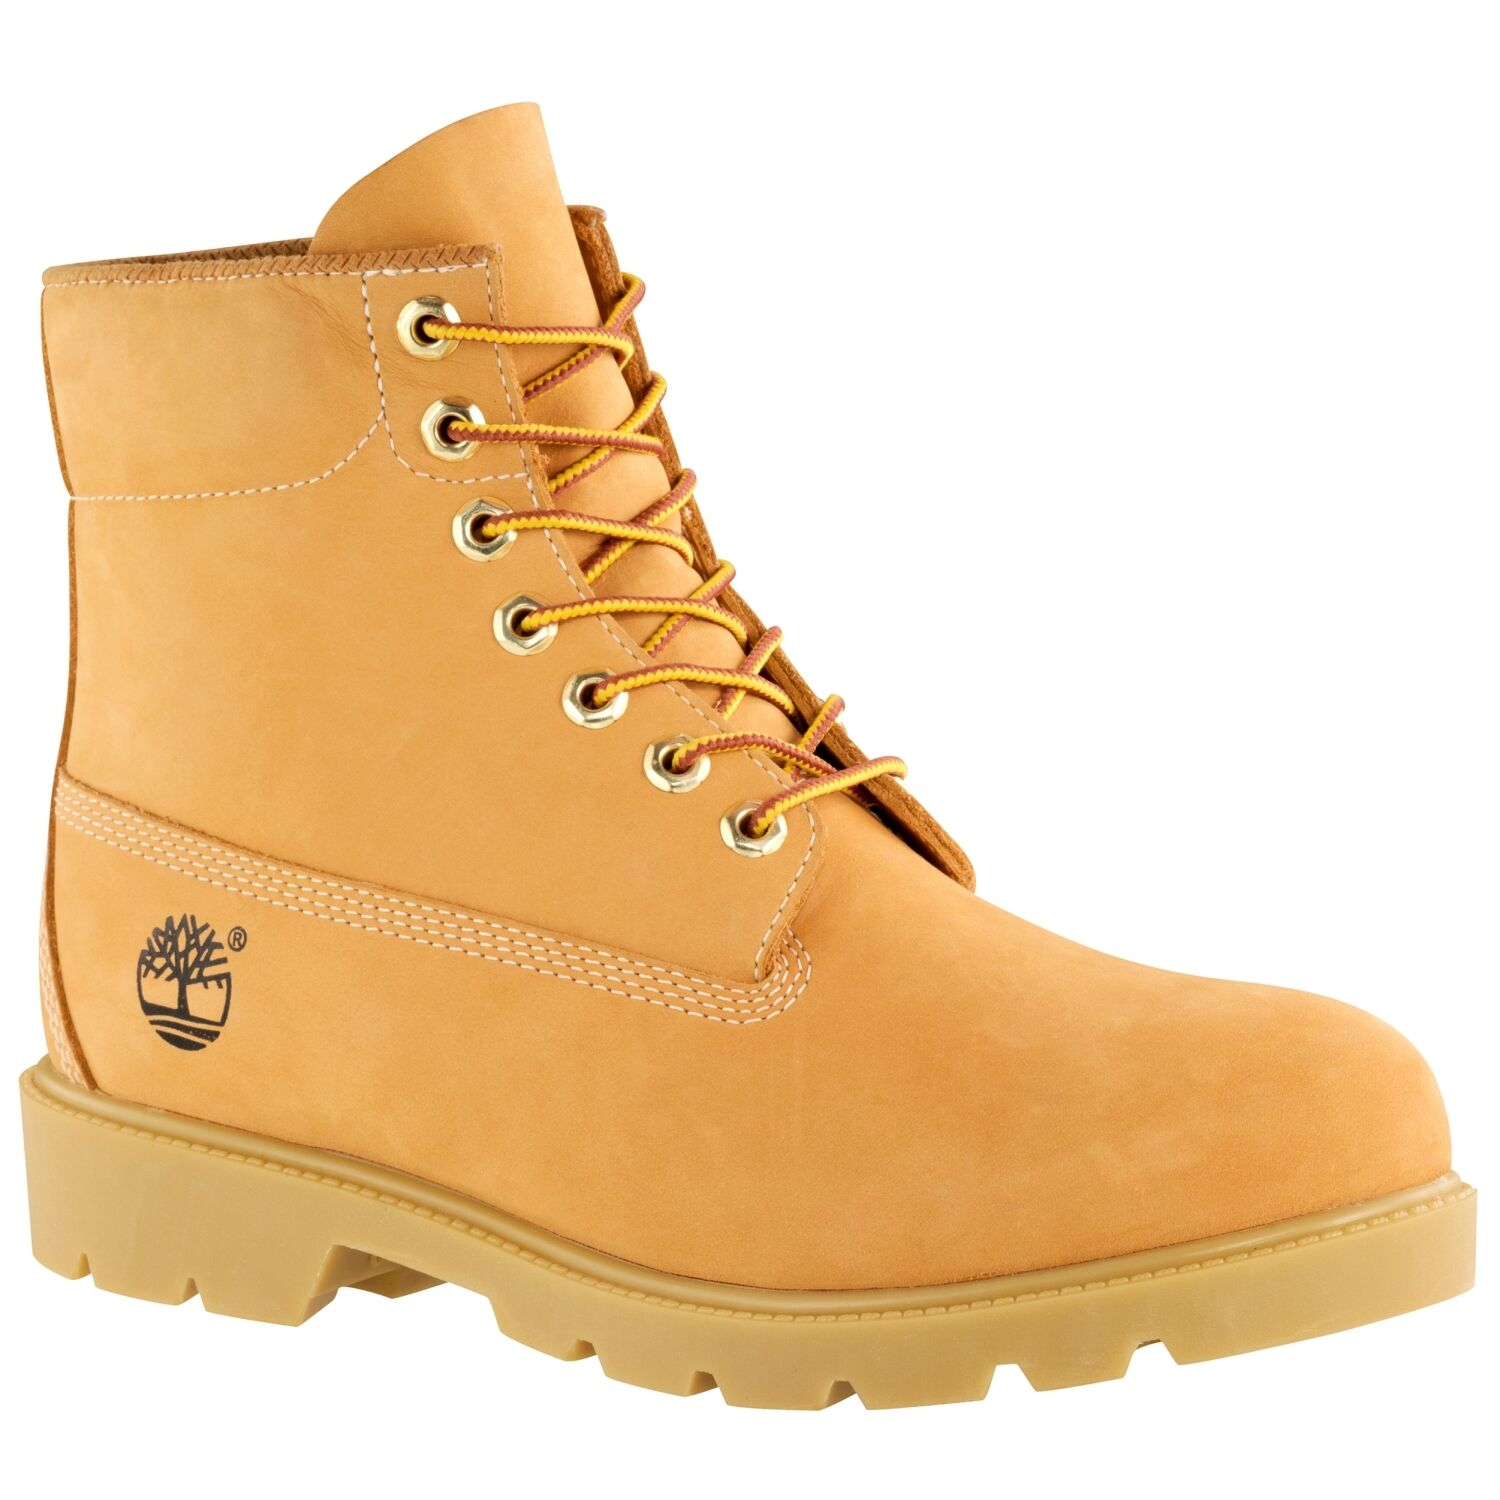 separation shoes 3cecf 980a6 mens nike work boots in wheat ridge